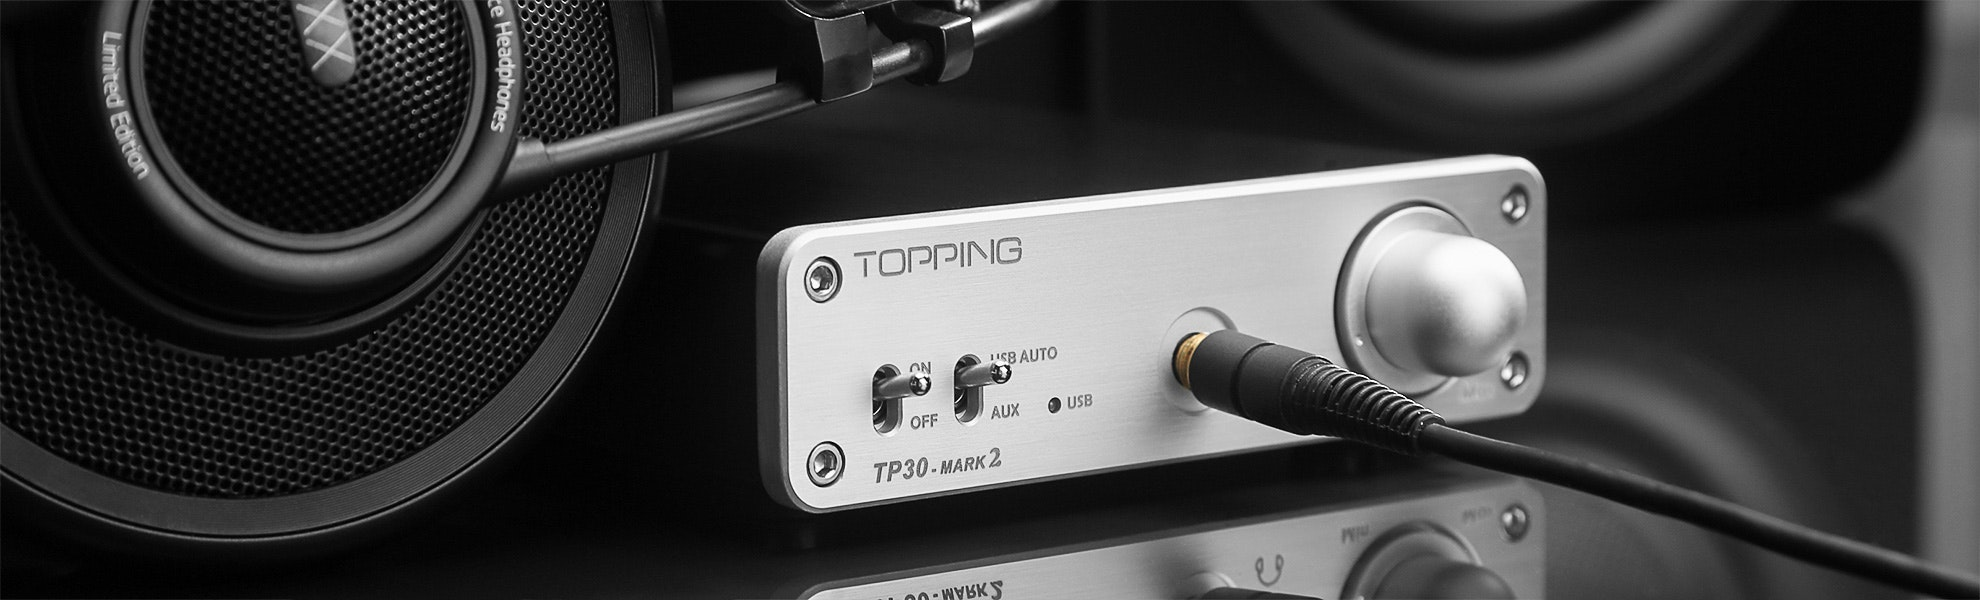 Topping TP30-MARK2